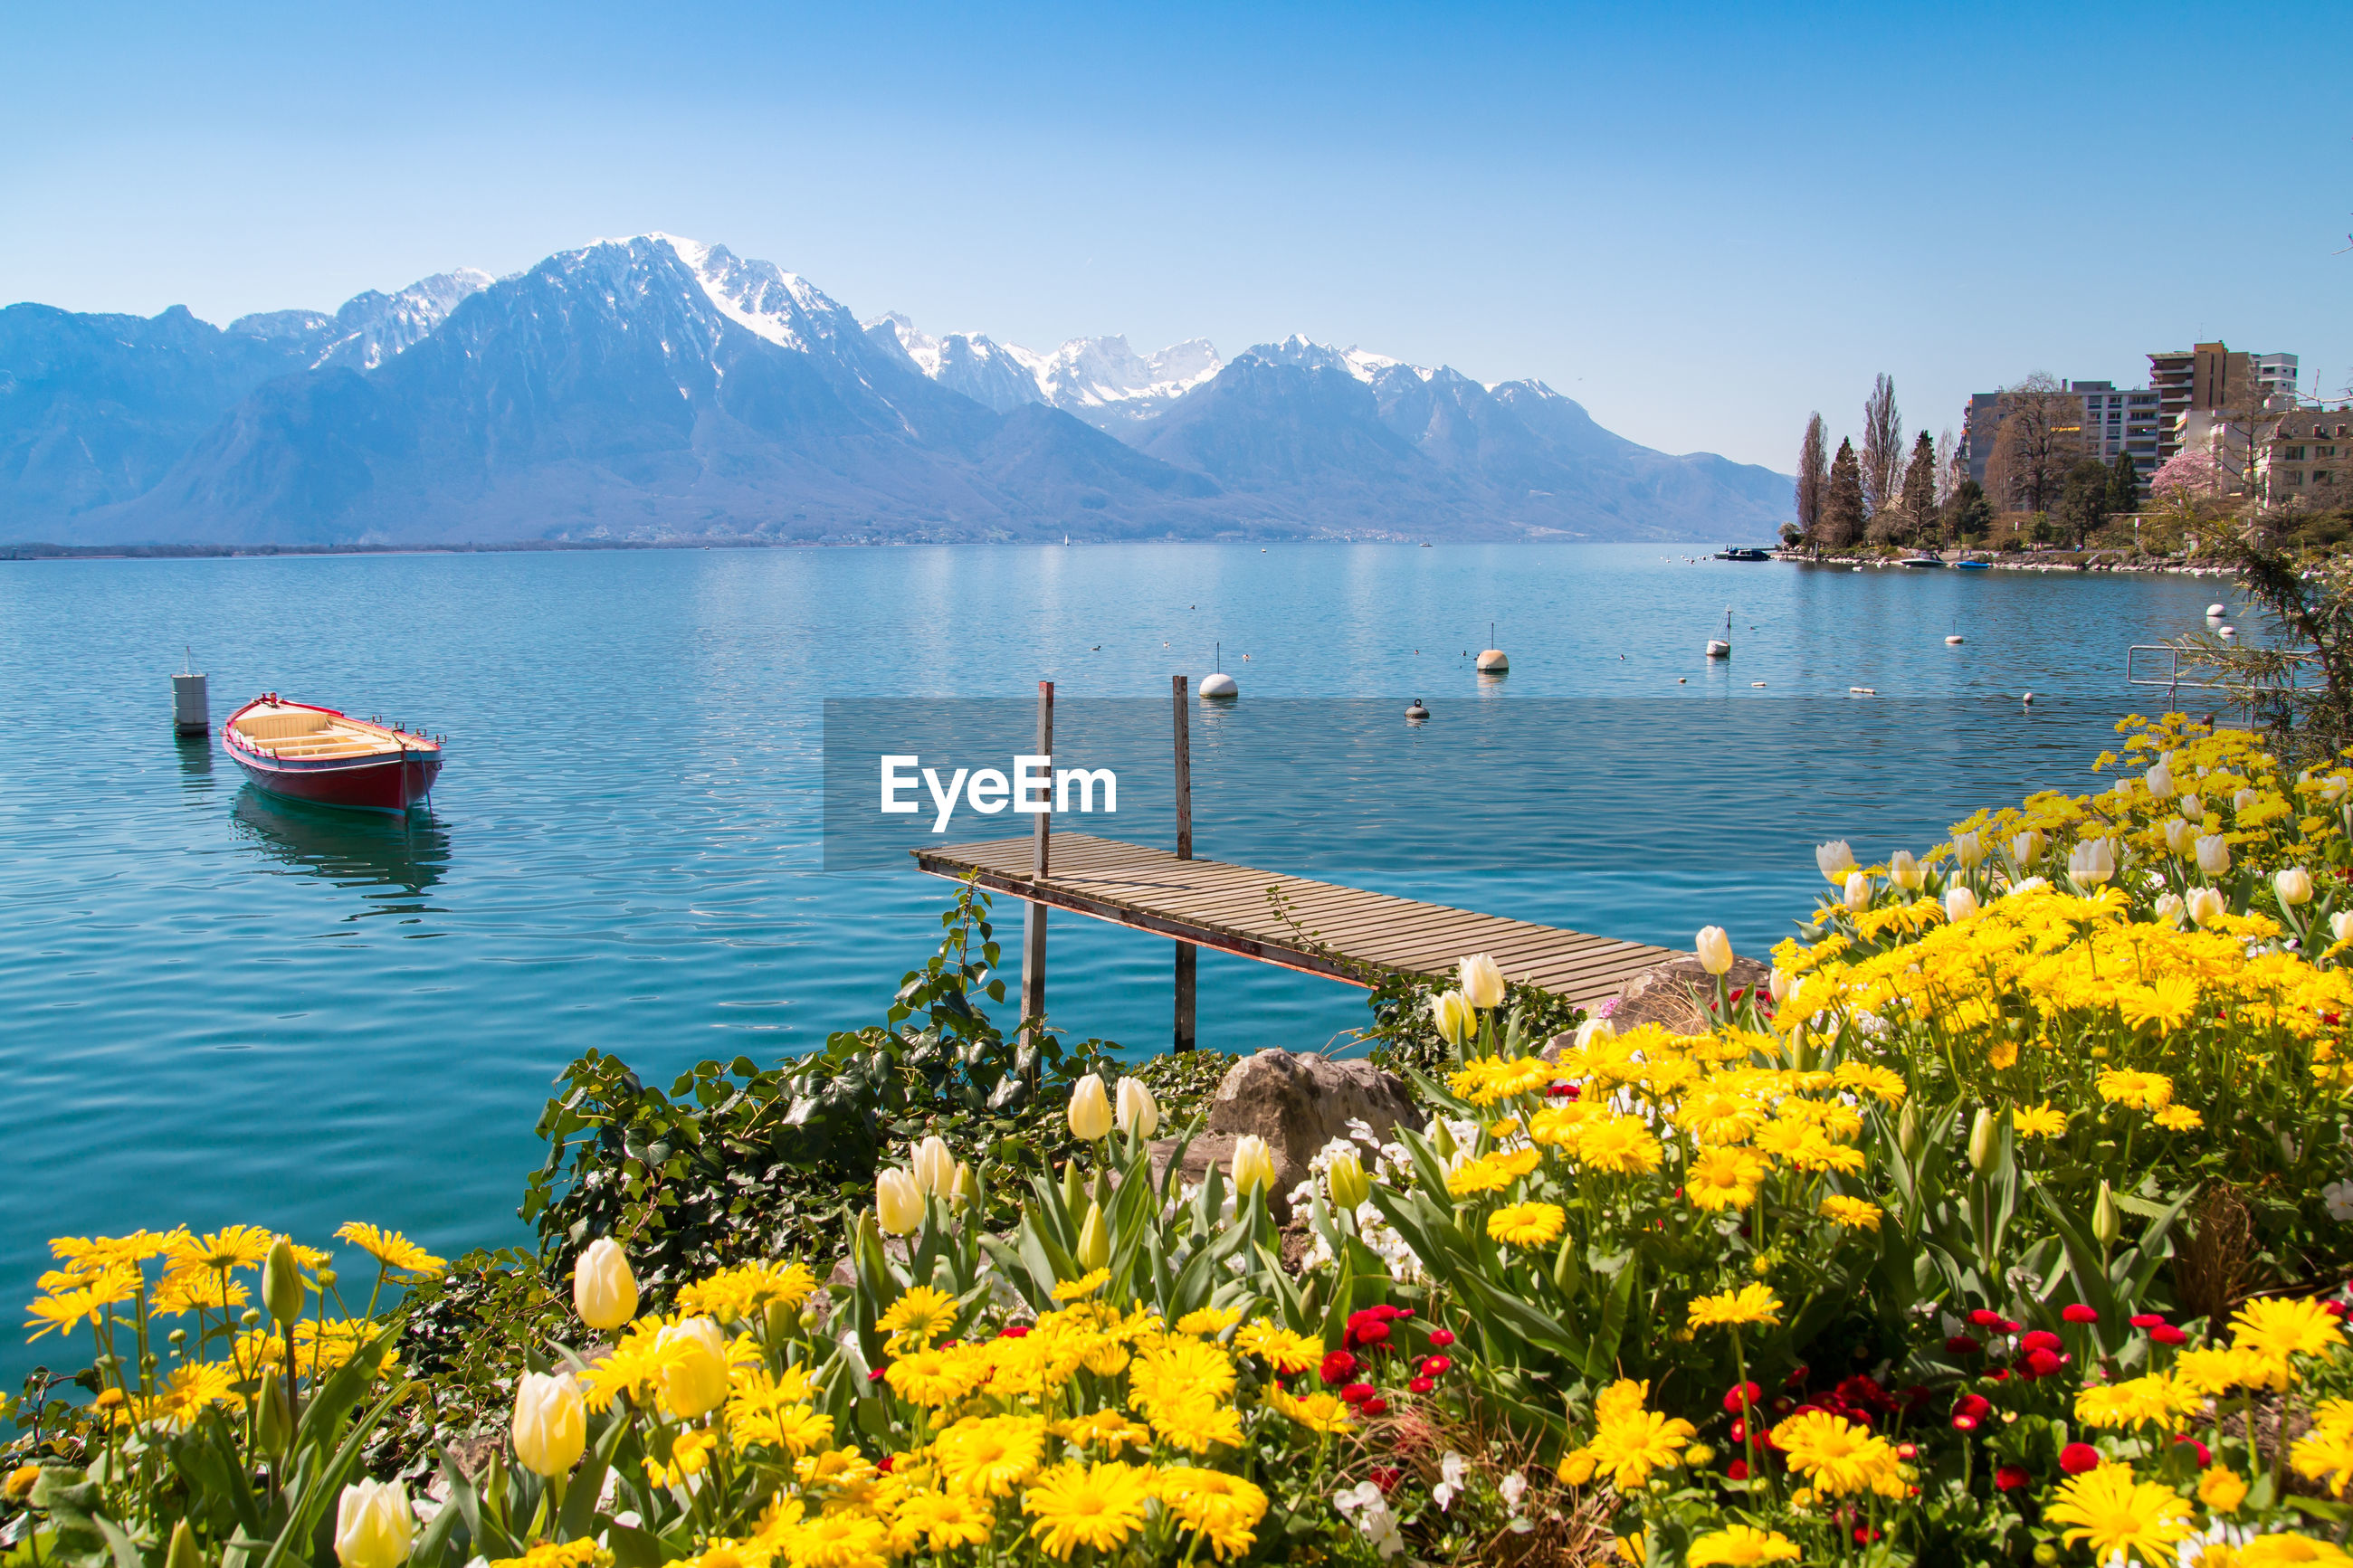 SCENIC VIEW OF YELLOW FLOWERS BY LAKE AGAINST MOUNTAINS